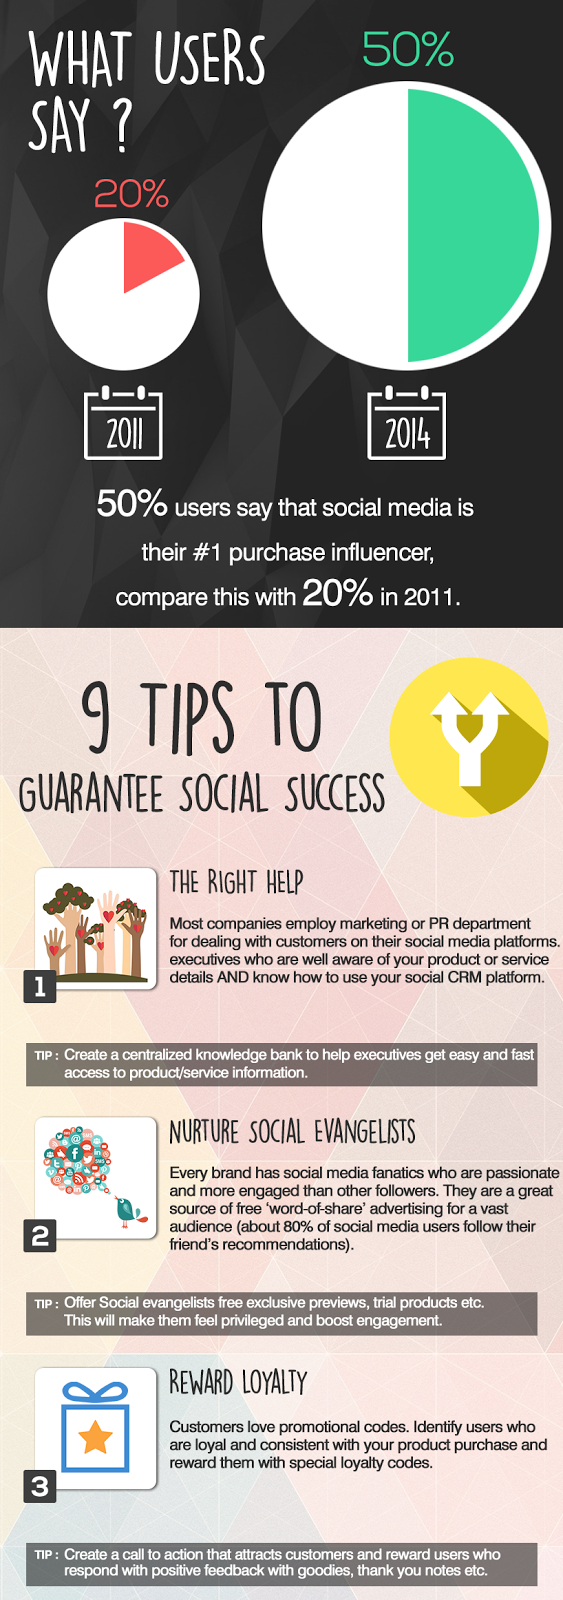 How to Perfect Your Social CRM Strategy?